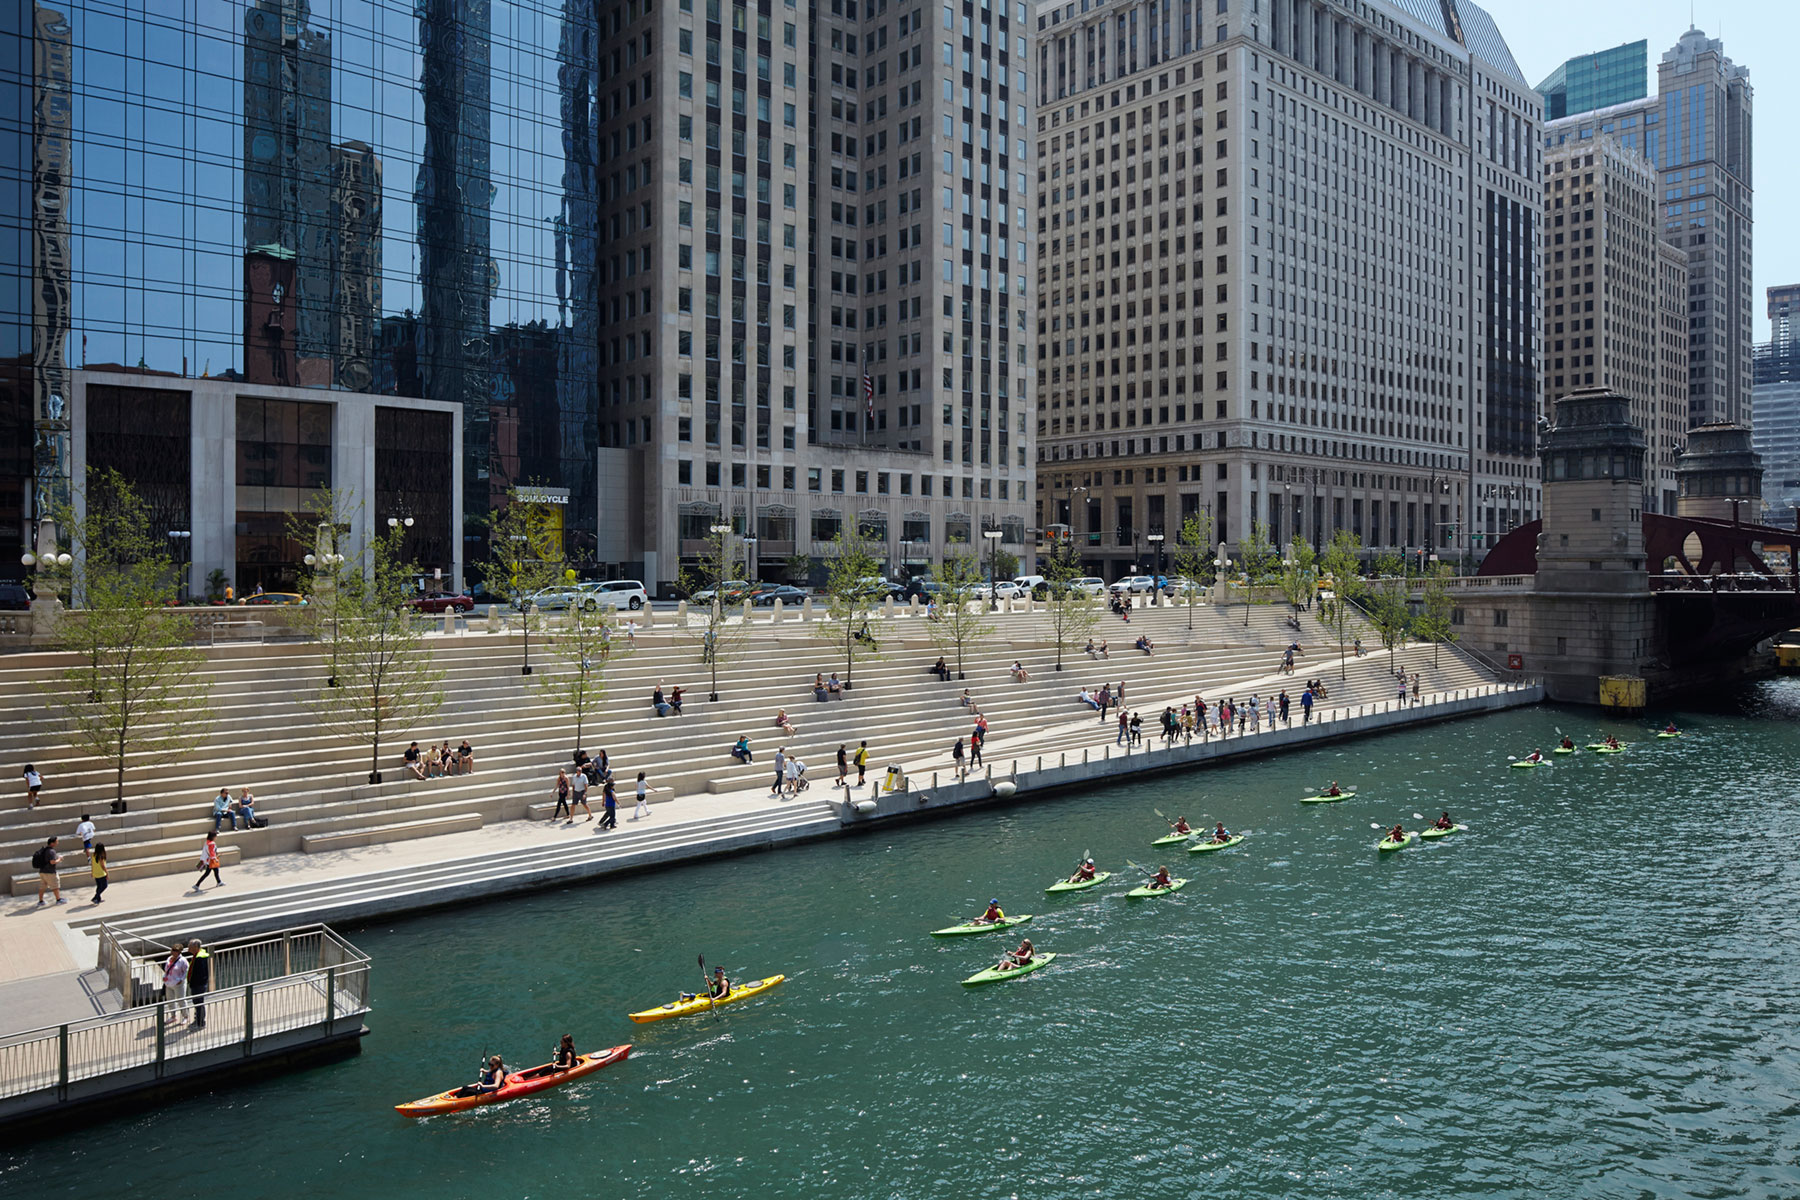 chicago urban river edges ideas lab launched to expand re